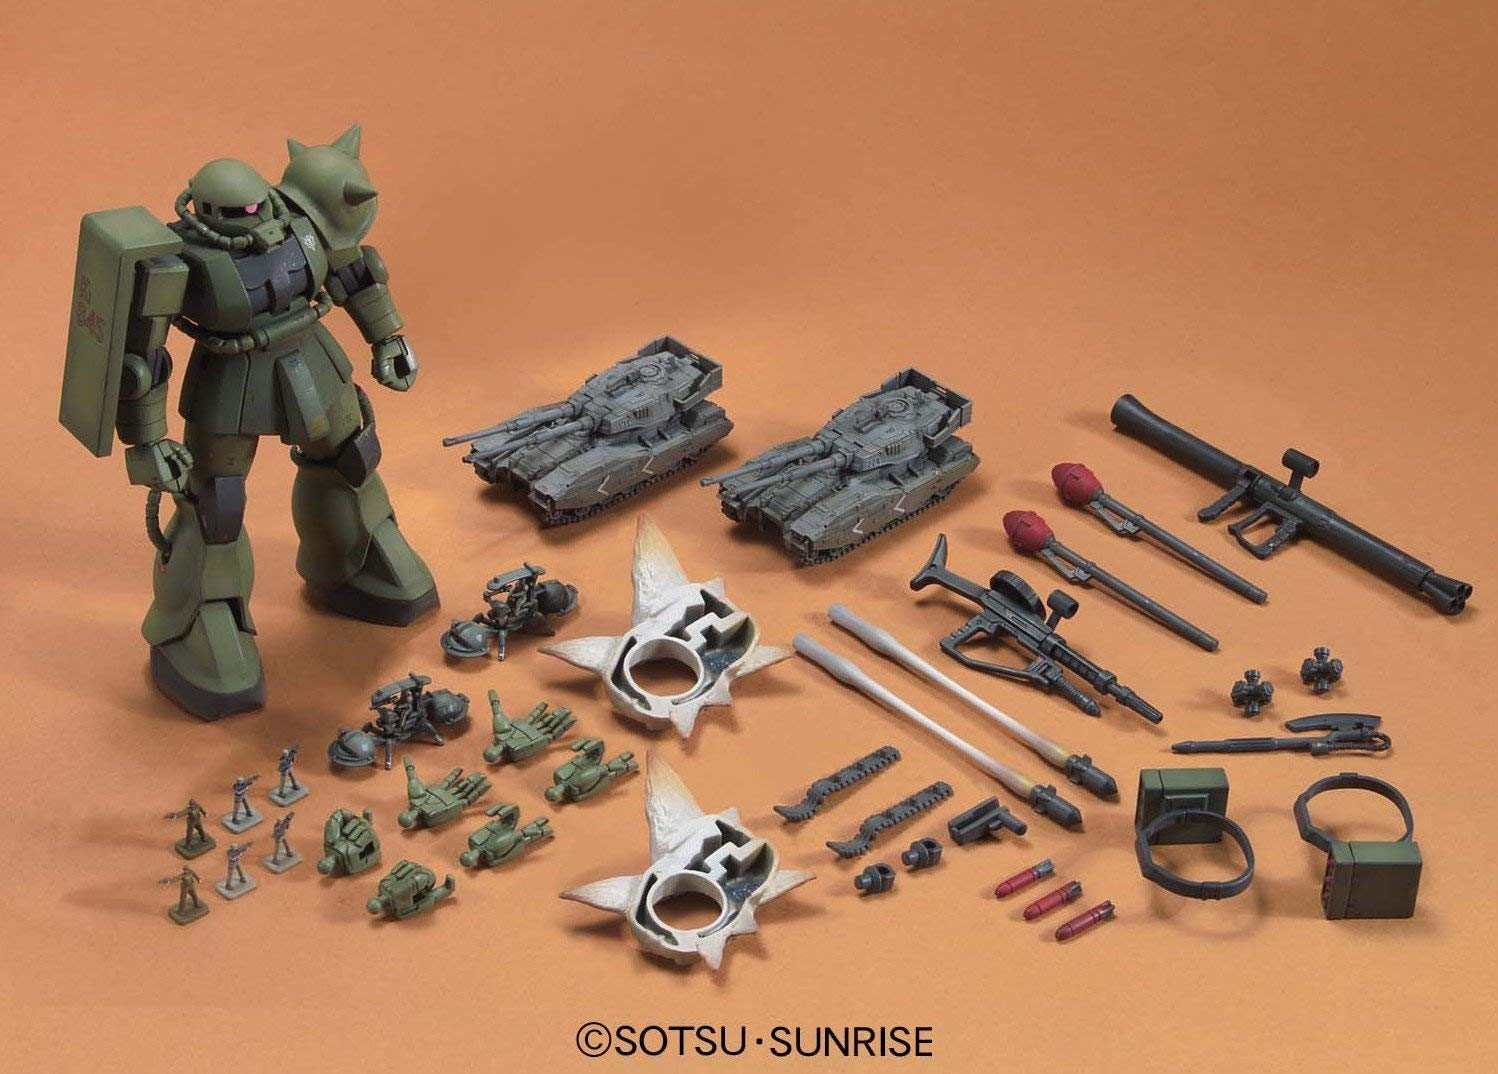 694HGUC 1/144 MS-06 ザク地上戦セット [Zaku The Ground War Set]